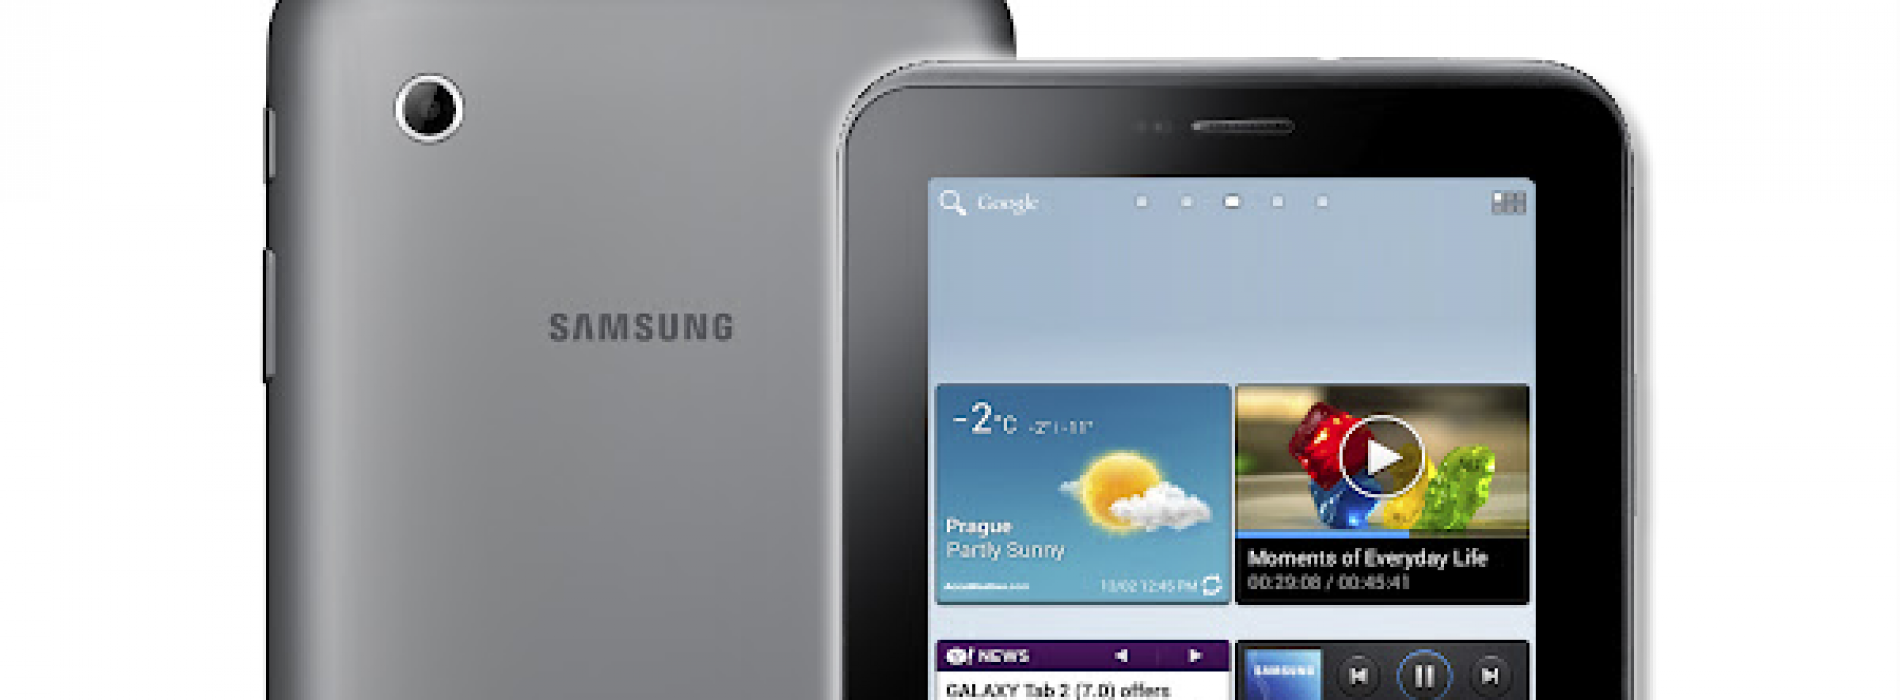 Samsung announces first 4.0 tablet. the GALAXY Tab 2 (7.0)